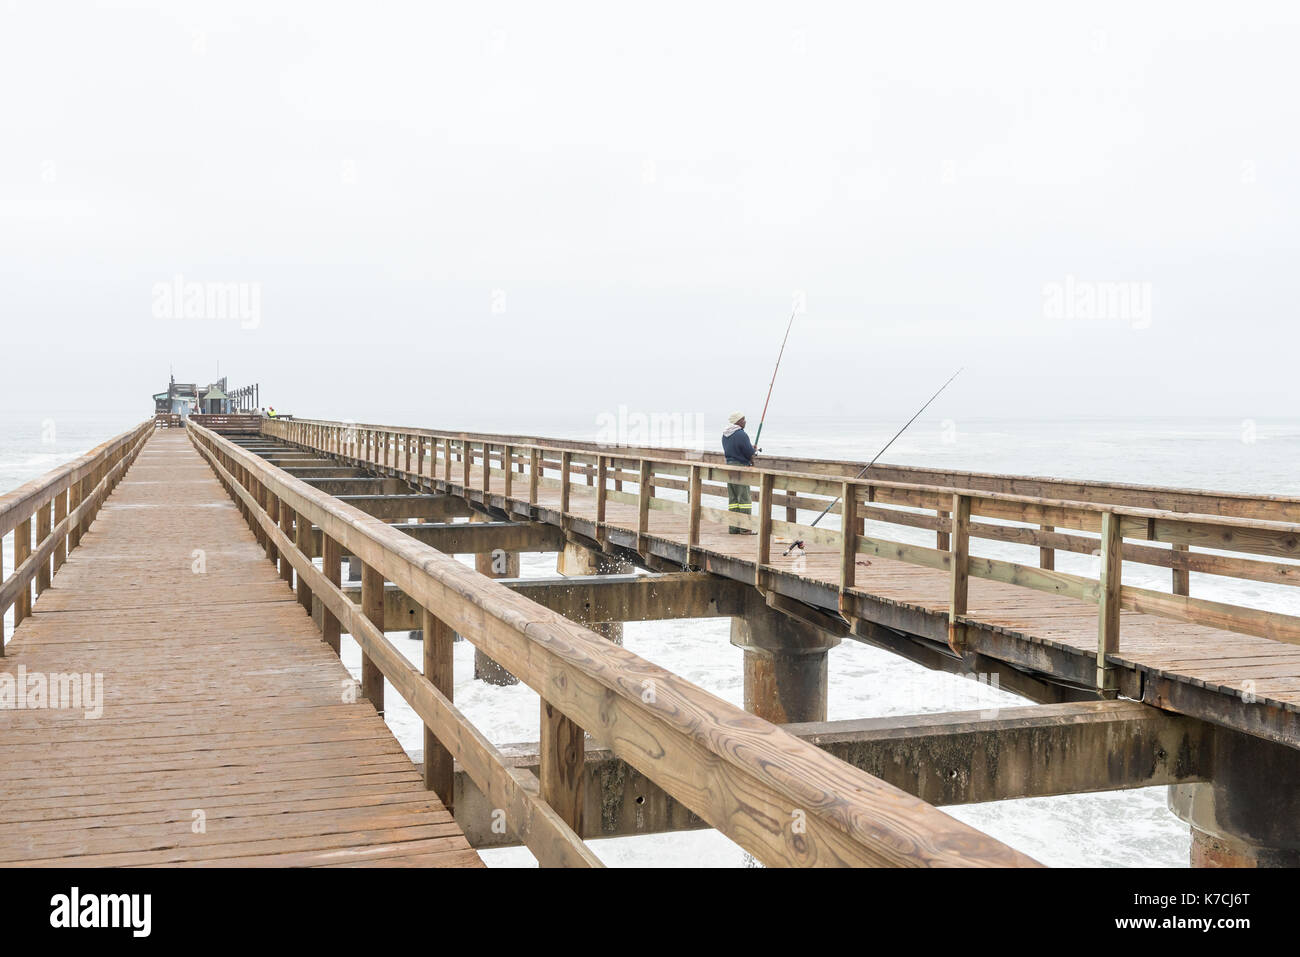 SWAKOPMUND, NAMIBIA - JUNE 30, 2017: An angler on the historic jetty, with a restaurant on its far end, in Swakopmund Stock Photo